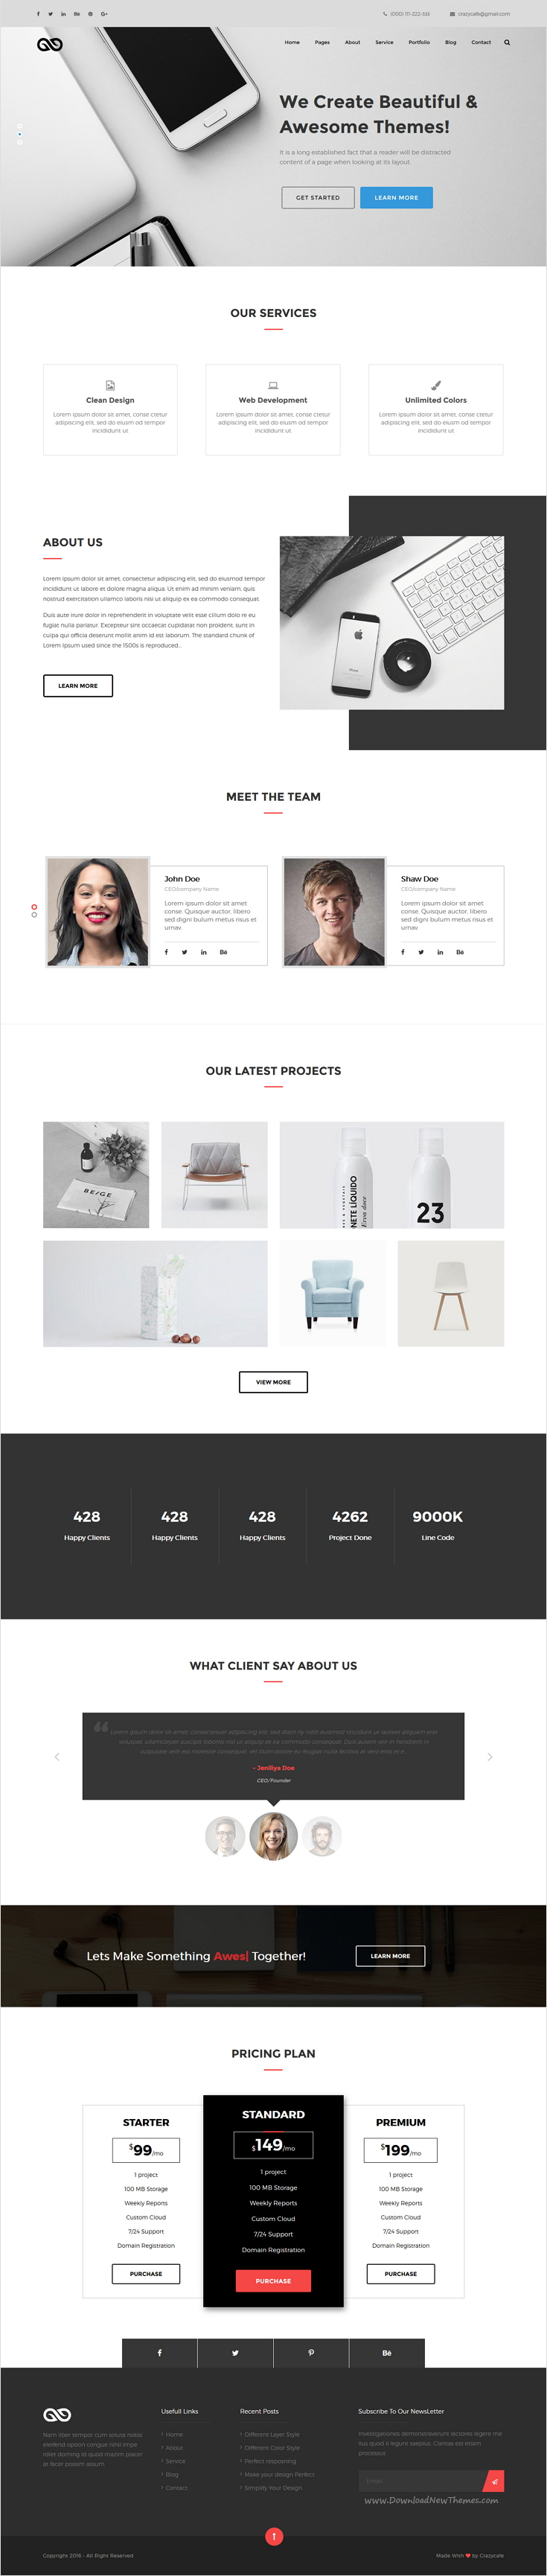 MIXED - Multipurpose Agency and Business Template | Template, Web ...